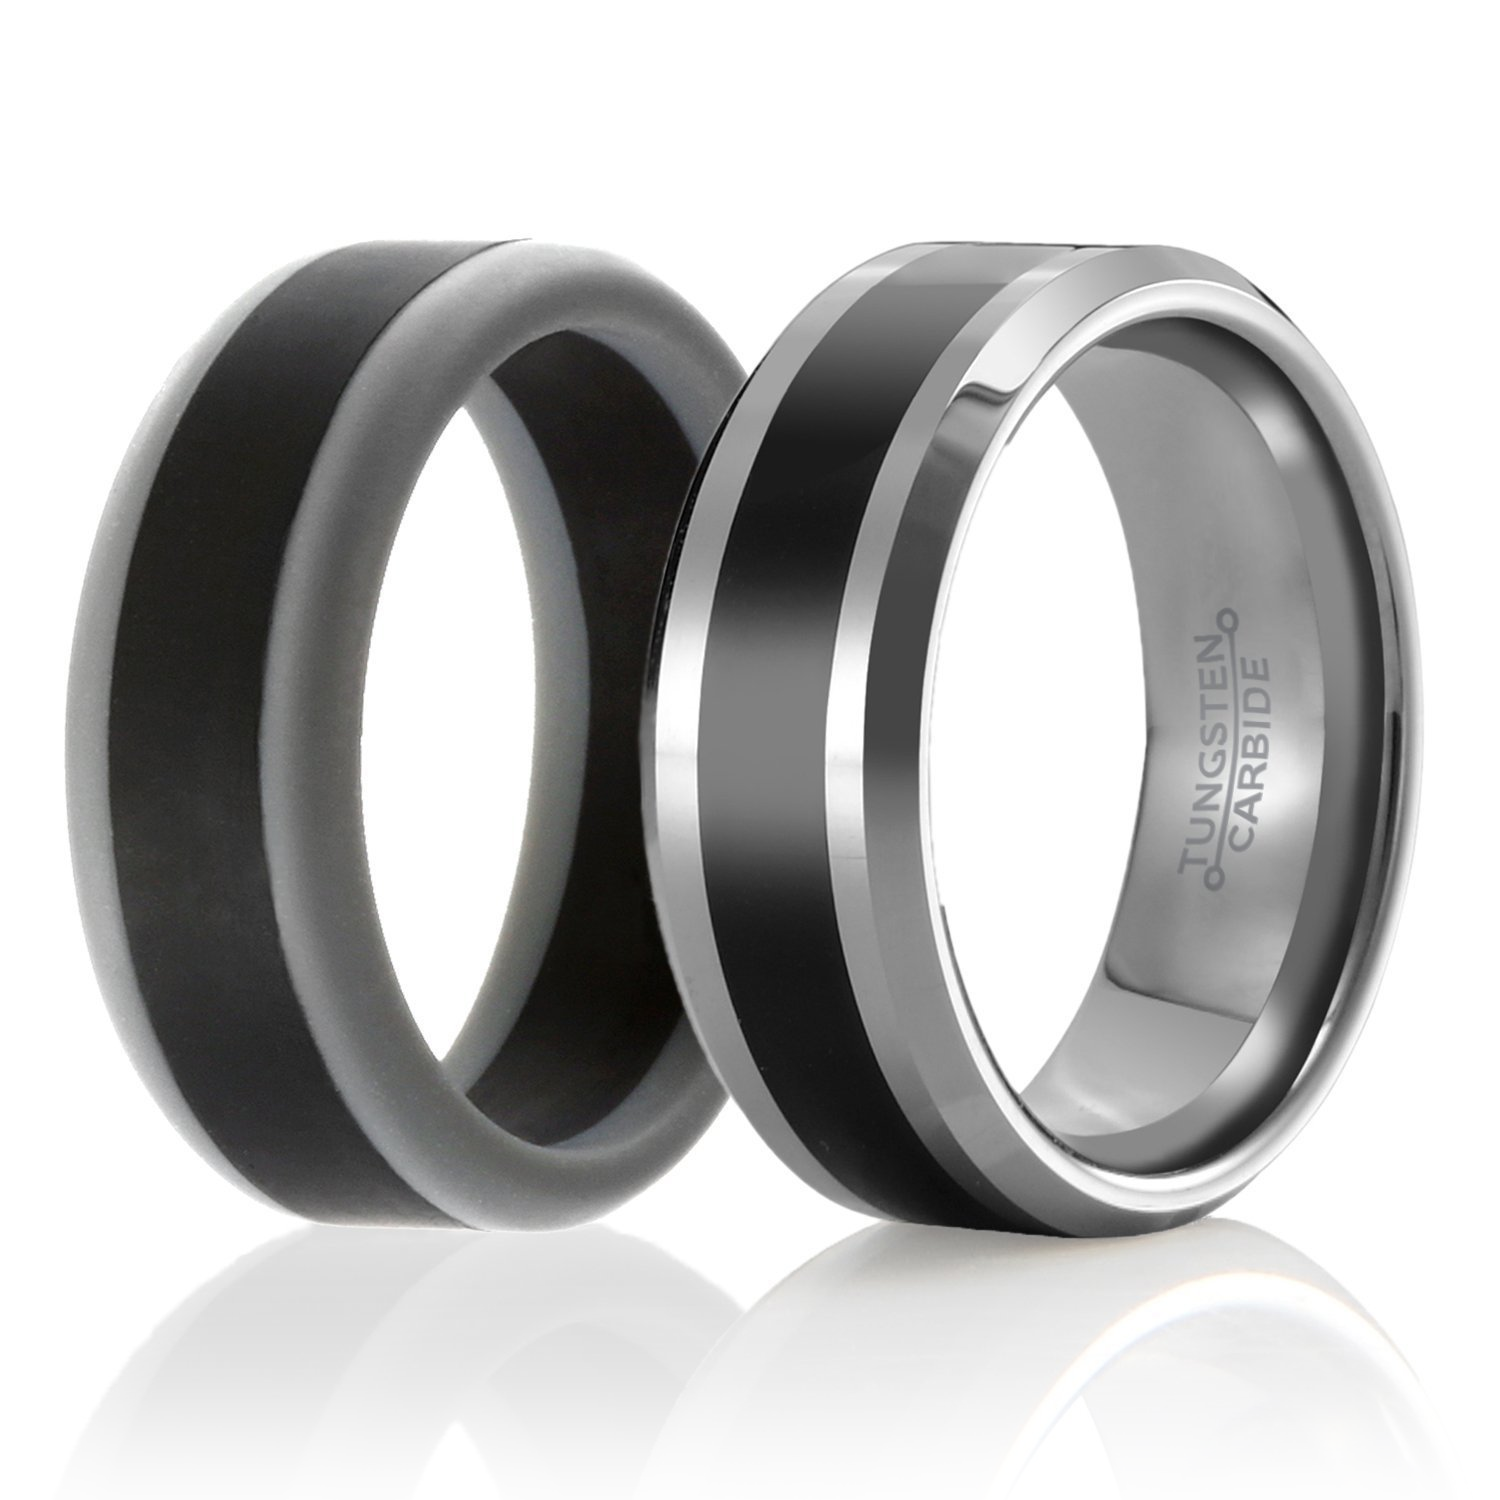 rounded rings wedding s matte shiree products men mens design brushed band ring by platinum